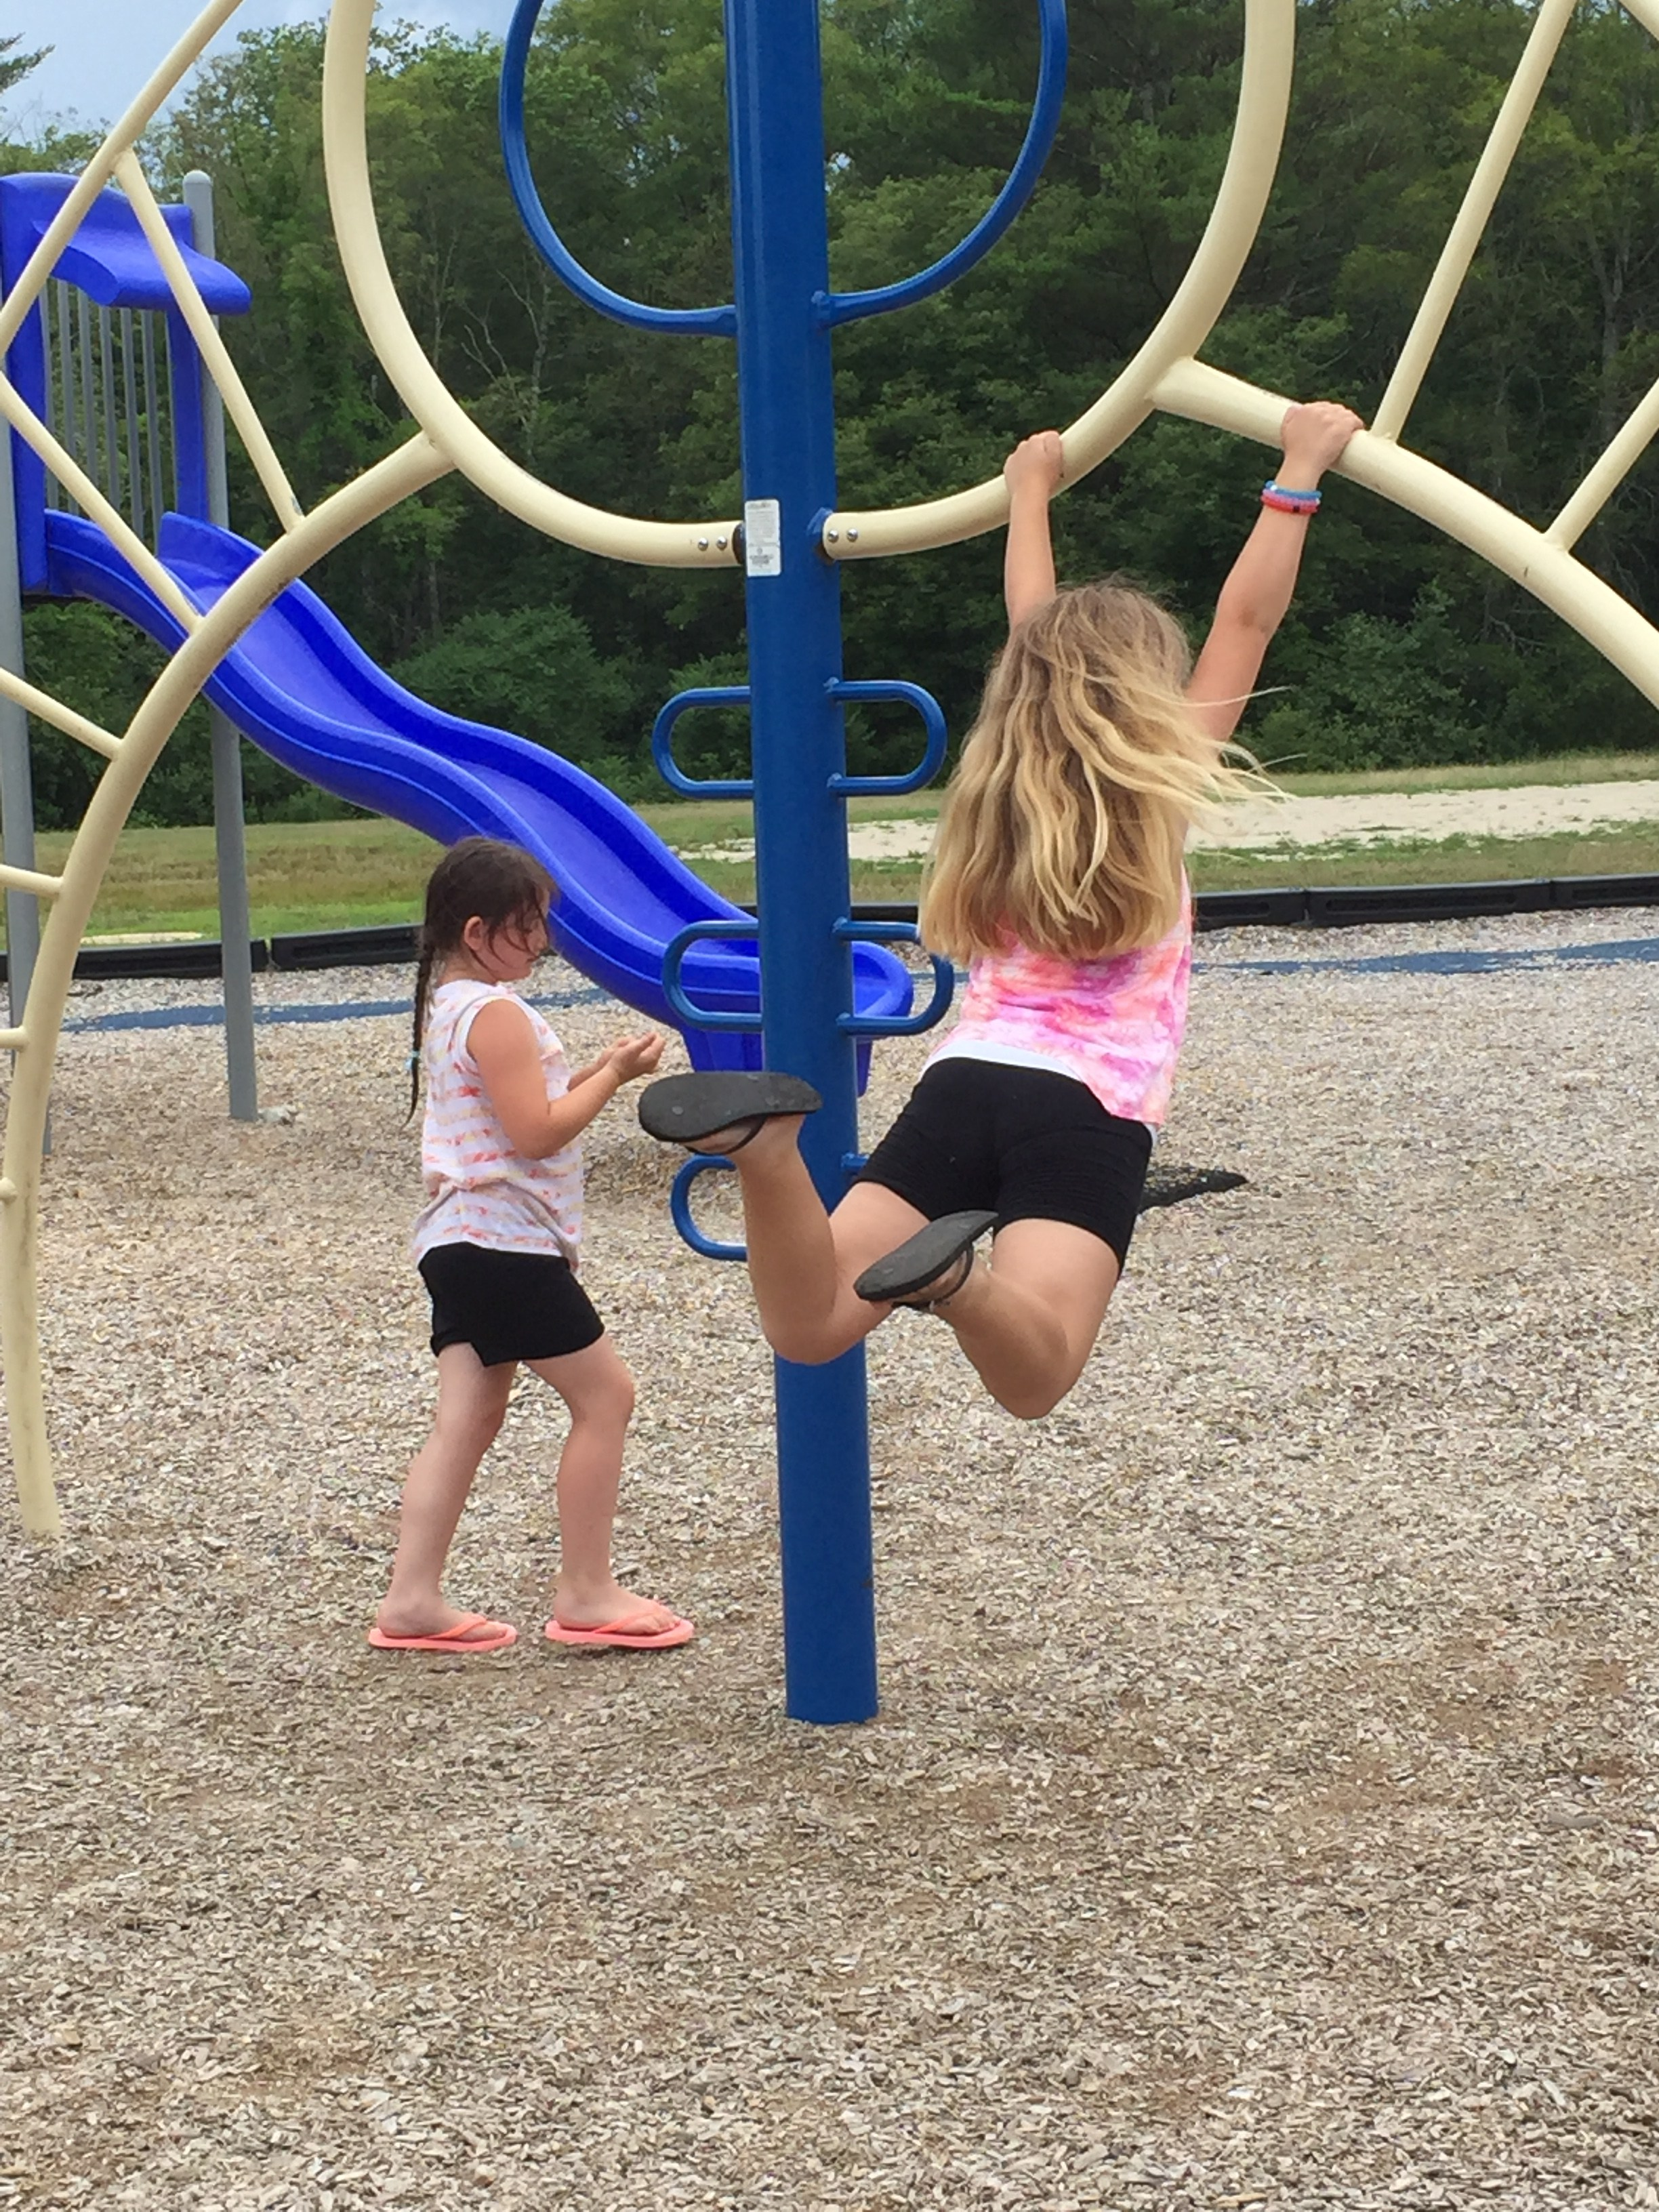 Children playing in the playground on the monkey bars